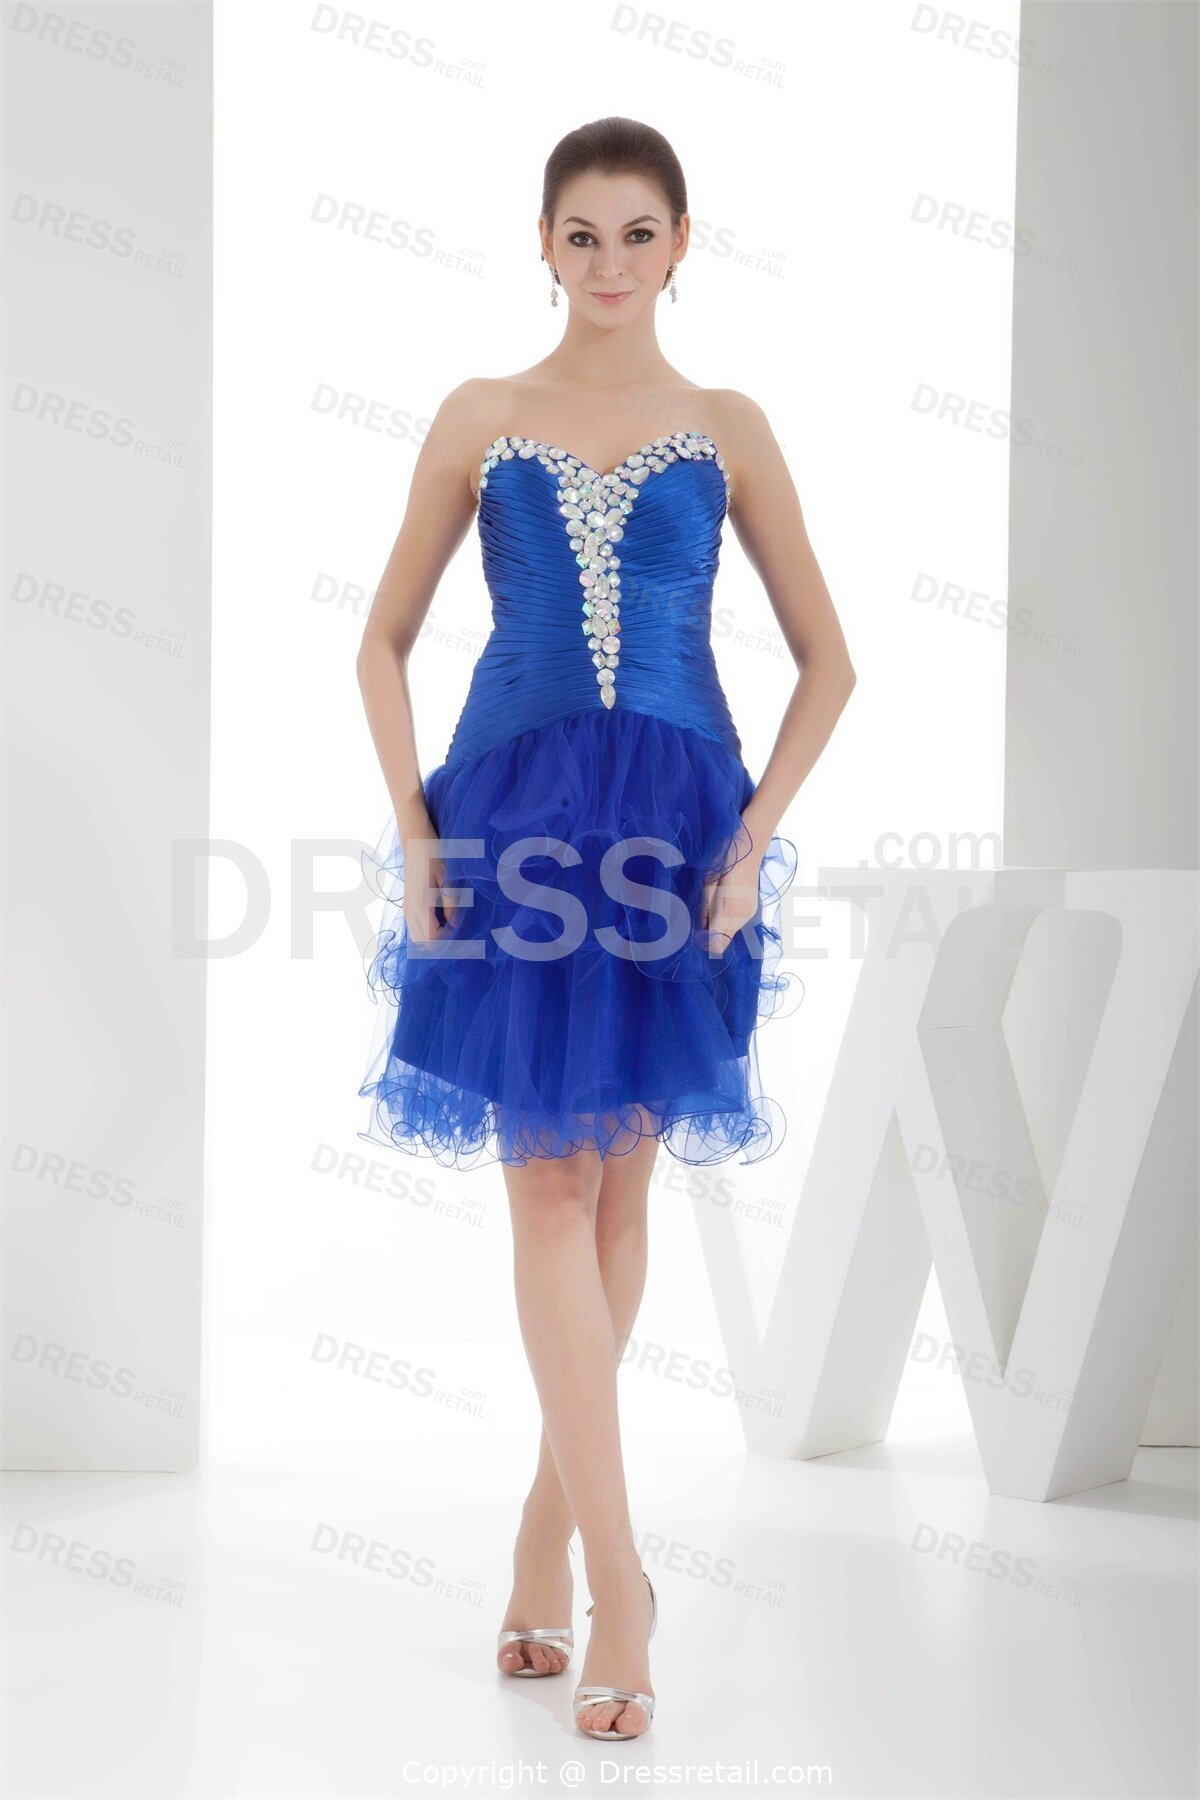 Wedding party guest dresses Photo - 6